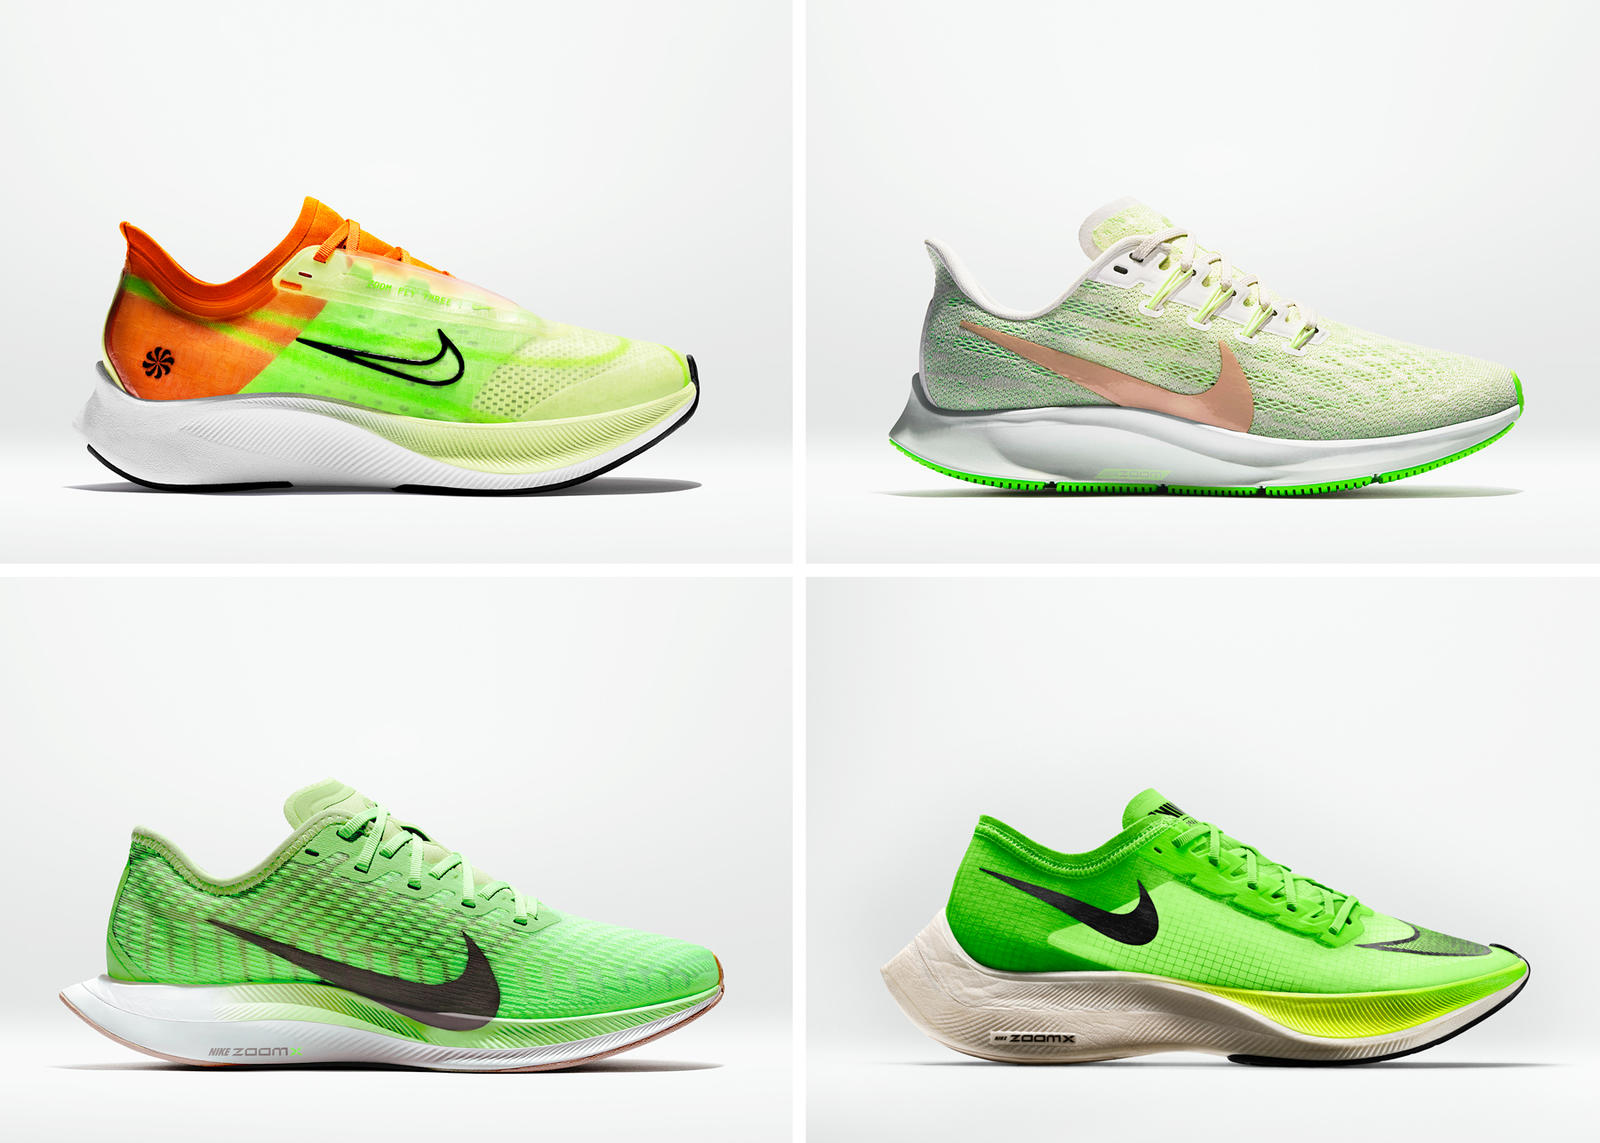 Nike Air Zoom Pegasus 36 Nike Zoom Pegasus Turbo 2 Nike ZoomX Vaporfly Next% Nike Zoom Fly 3  19